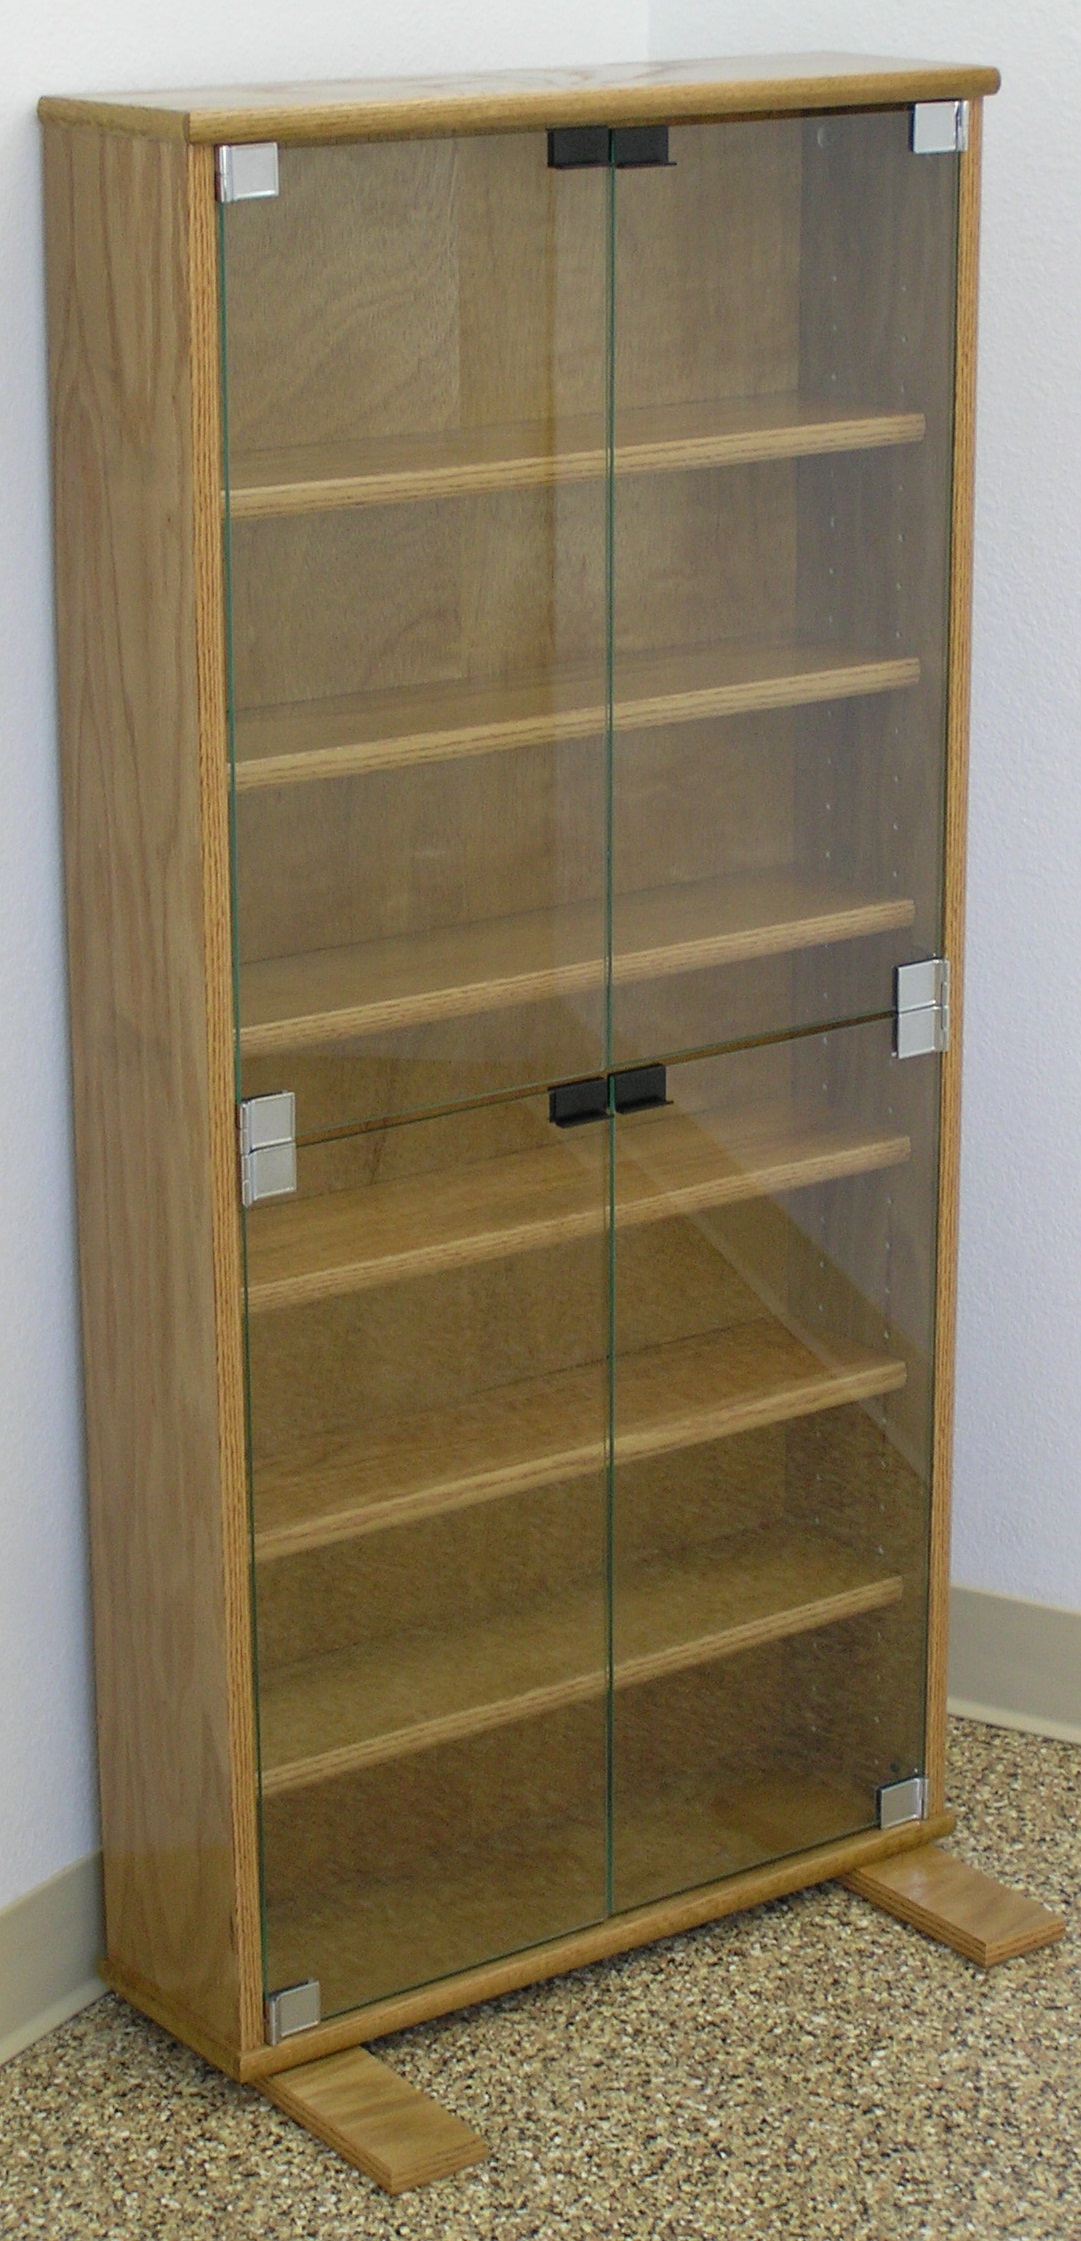 dvd-storage-cabinet-48h-open-detail-glass-007.jpg